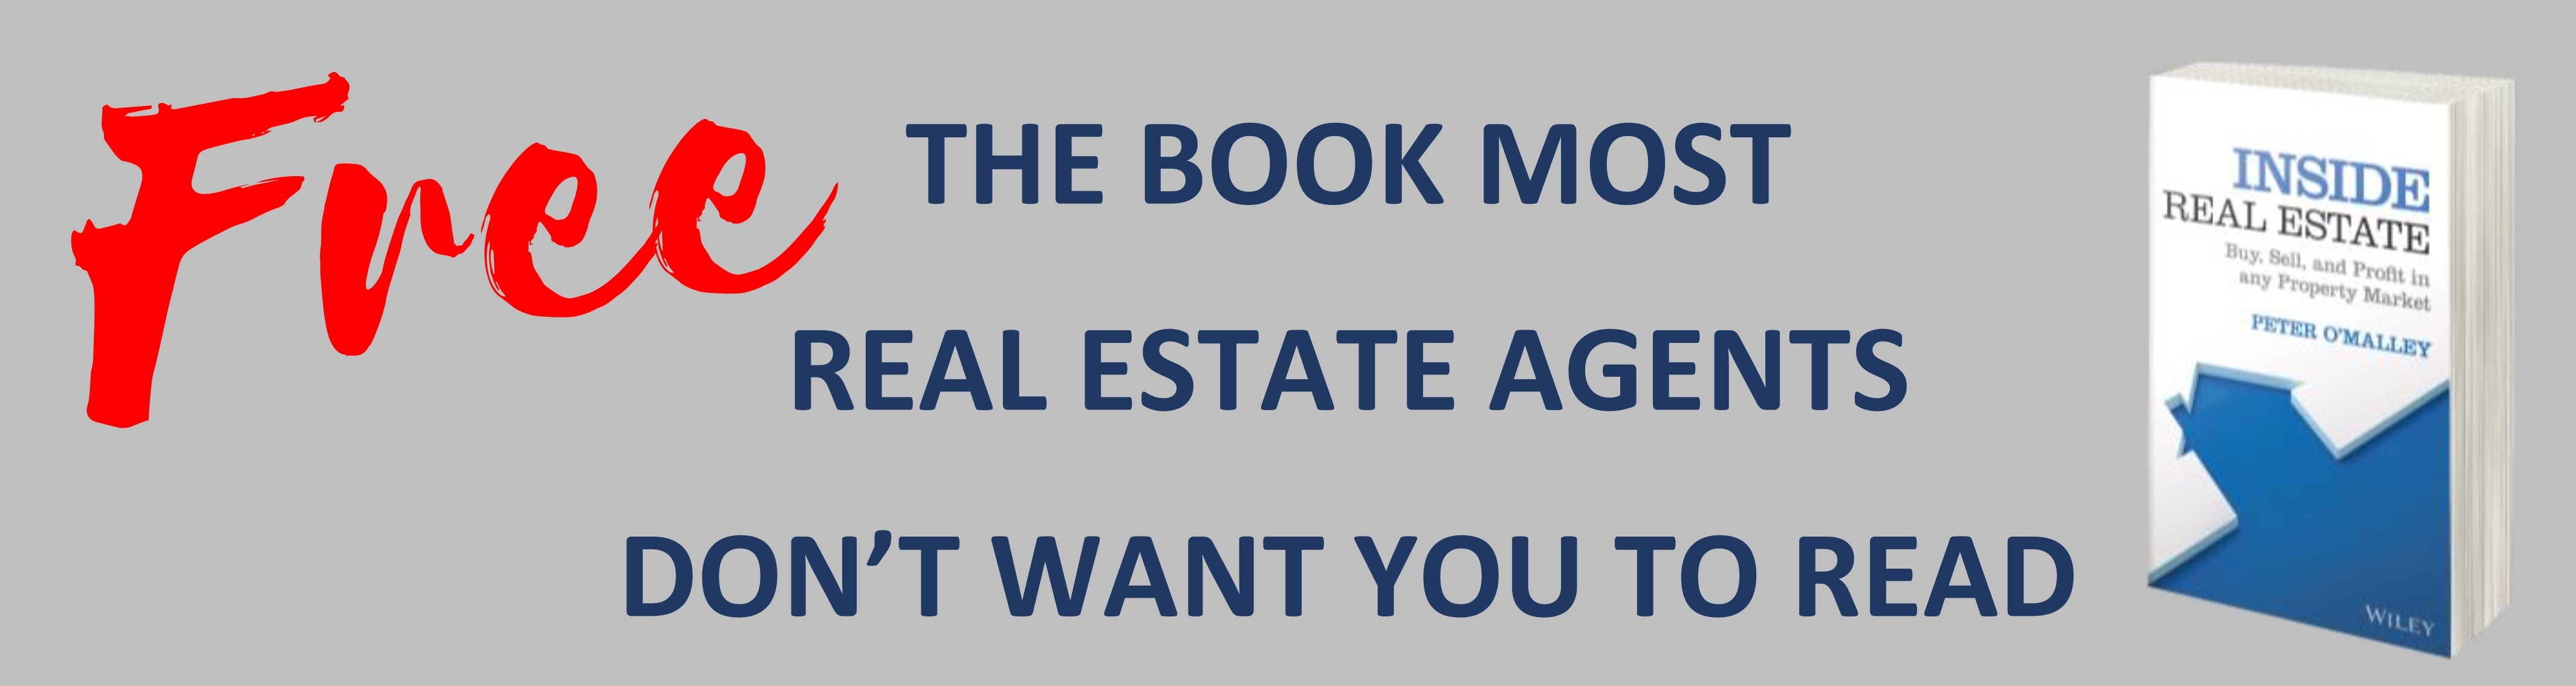 The book most Real Estate Agents don't want you to read